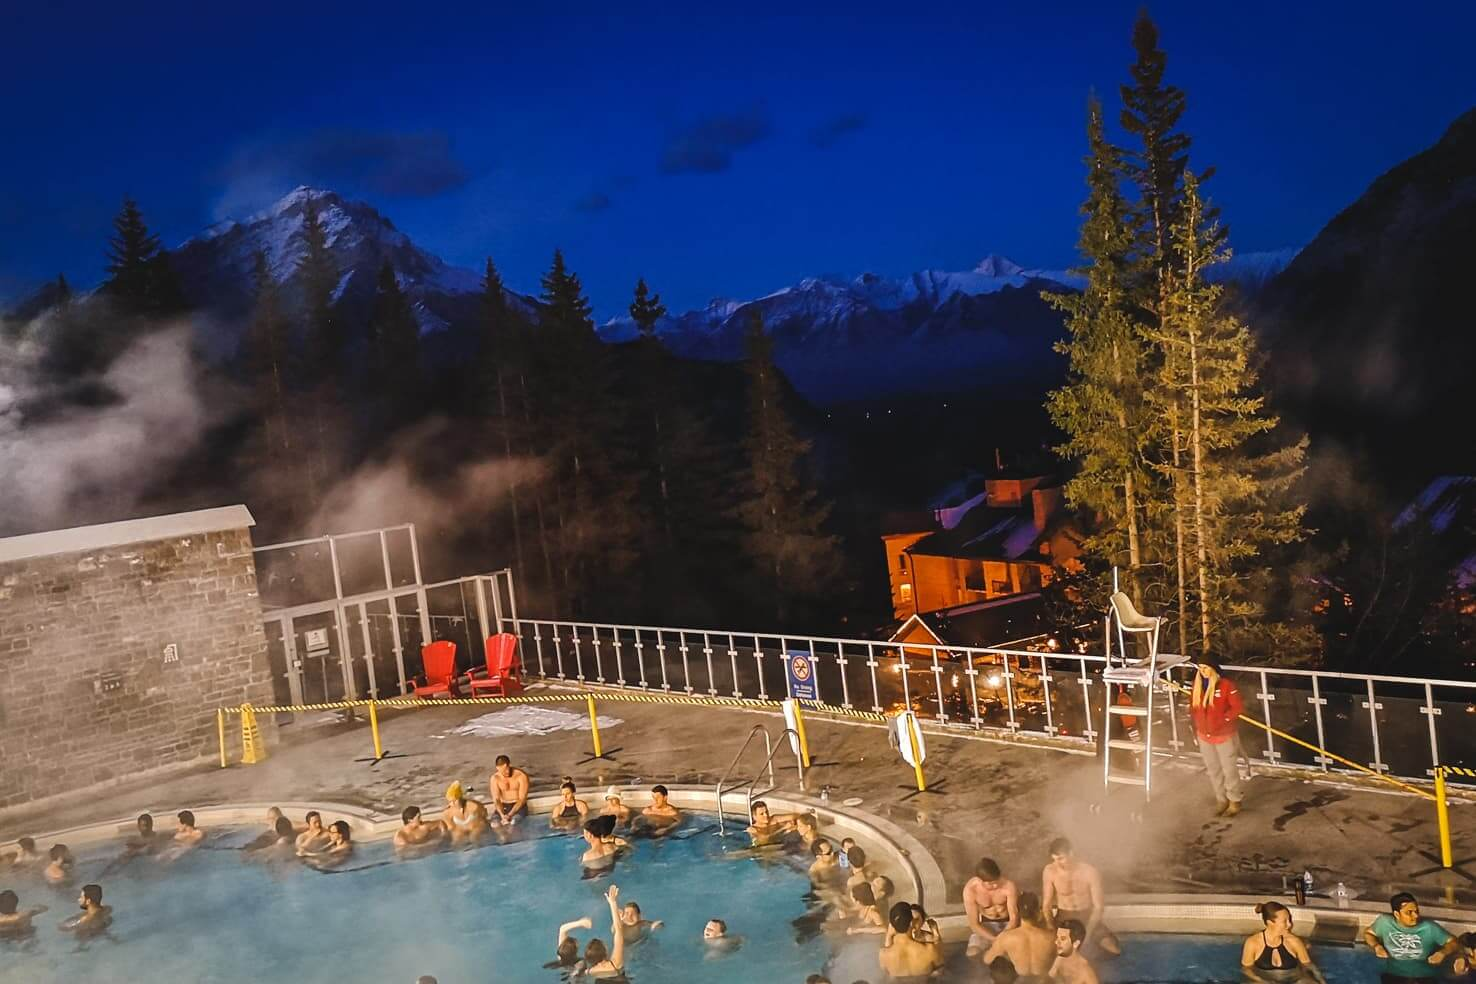 100 things to do in Banff National Park, Canada - Upper Hot Springs in Banff